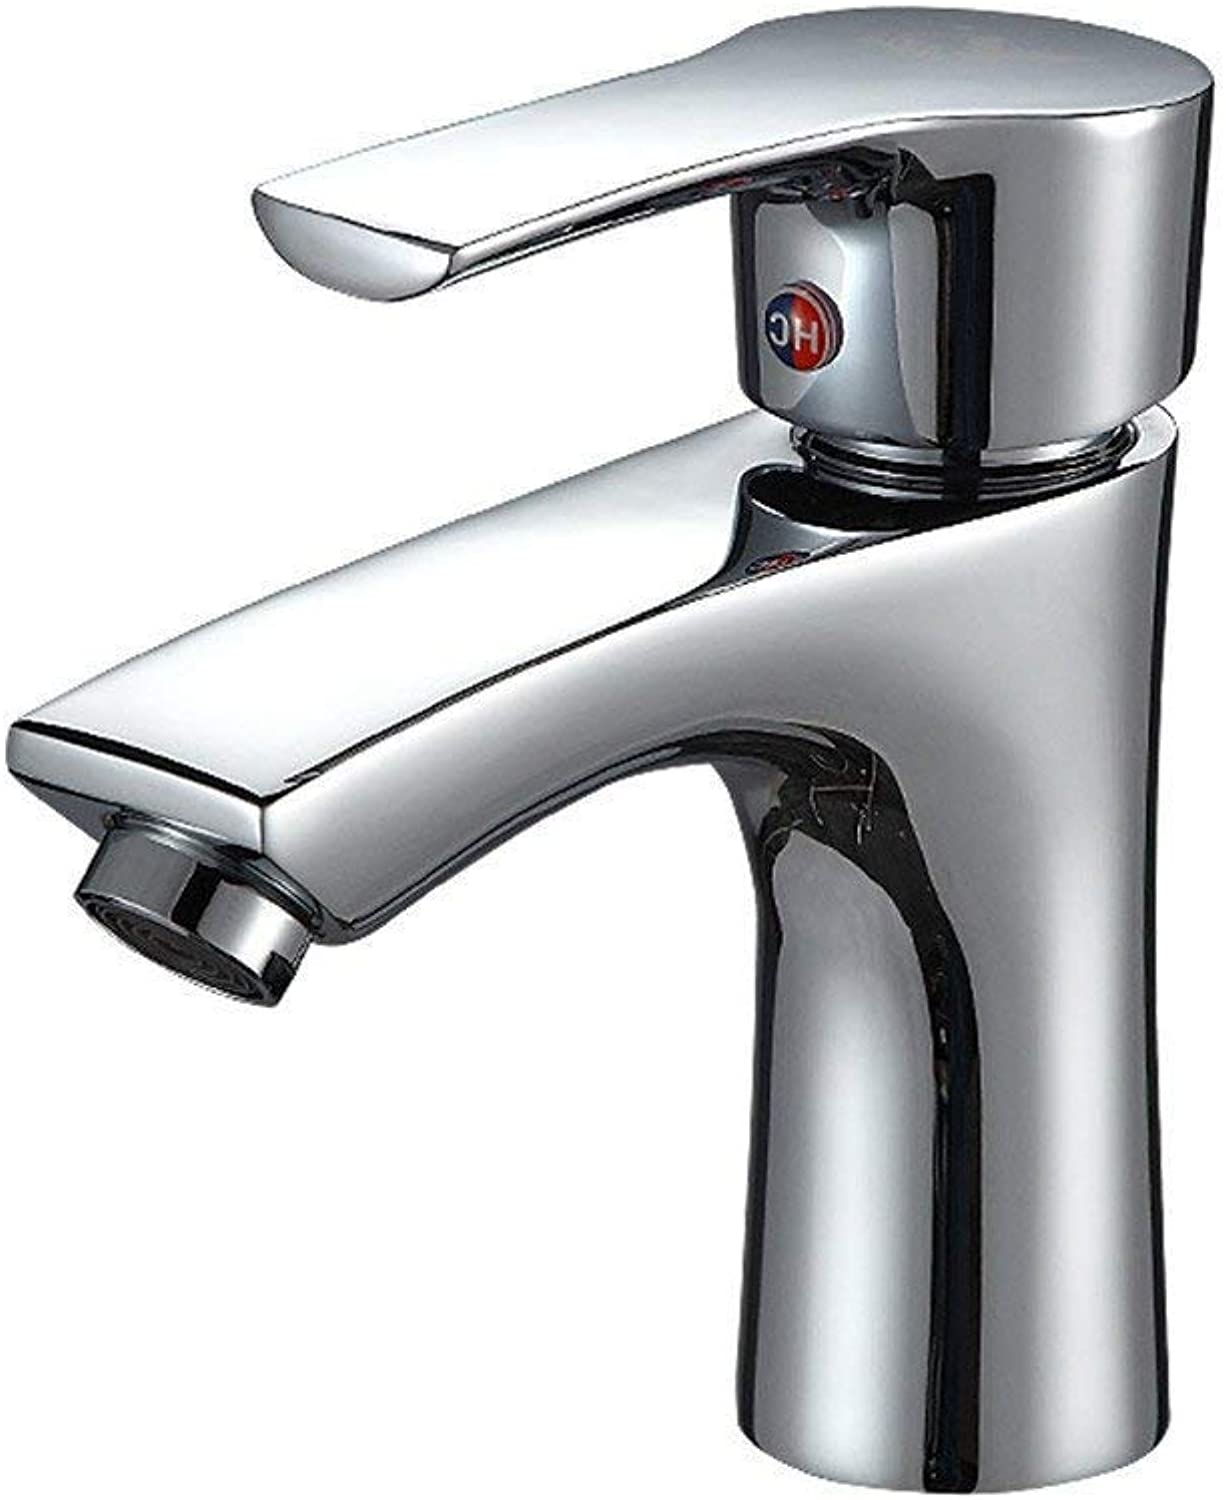 Oudan Washbasin, Washbasin, Washbasin, Faucet, Cold and Hot Single Hole,A (color   B, Size   -)